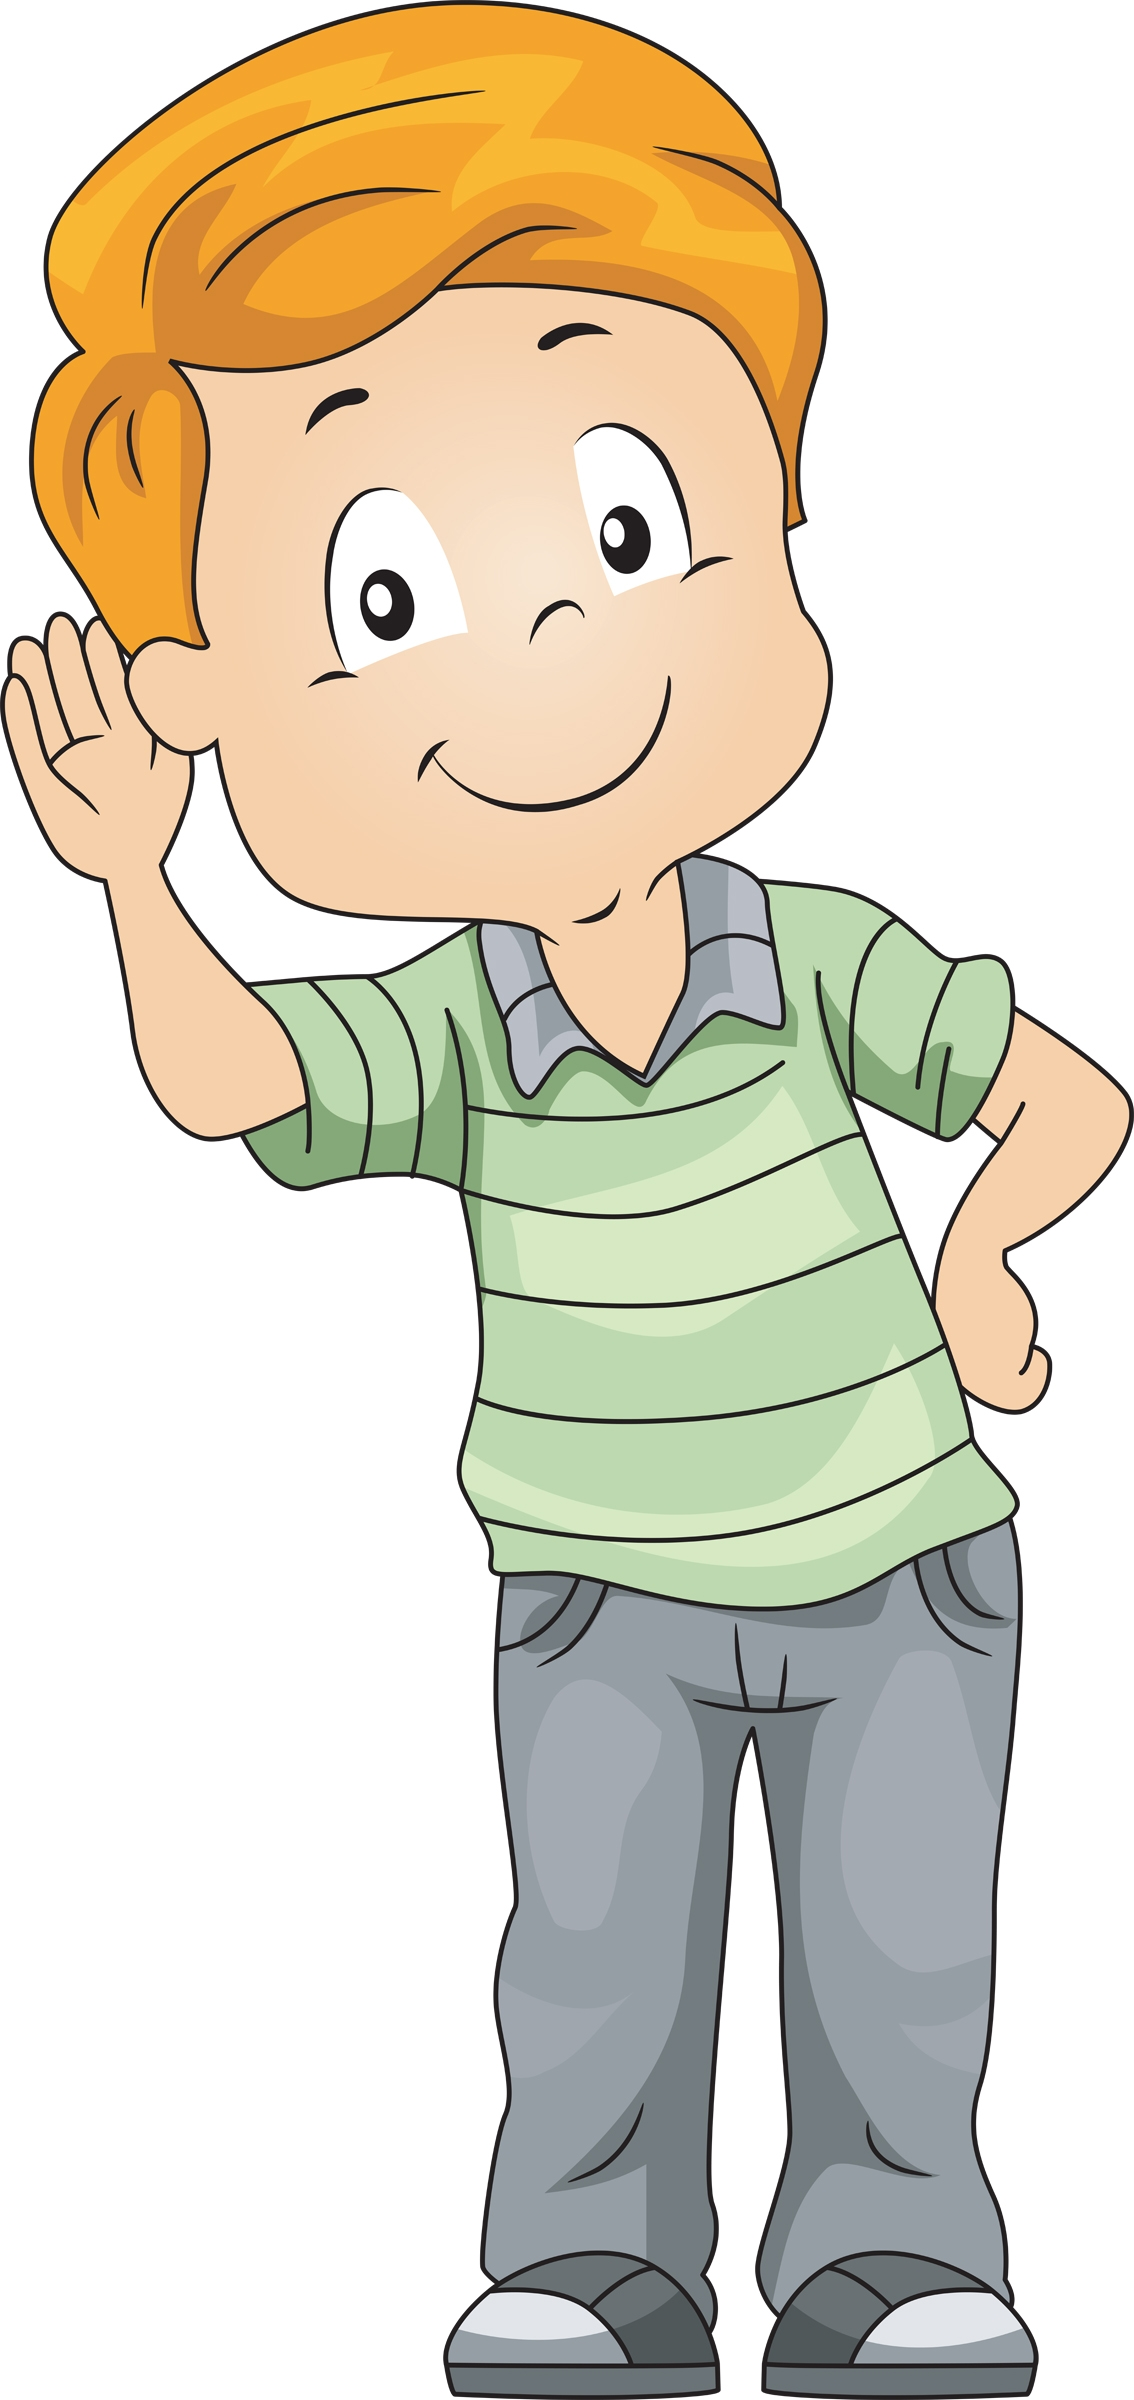 jpg free library Free ears cliparts download. Kids listening clipart